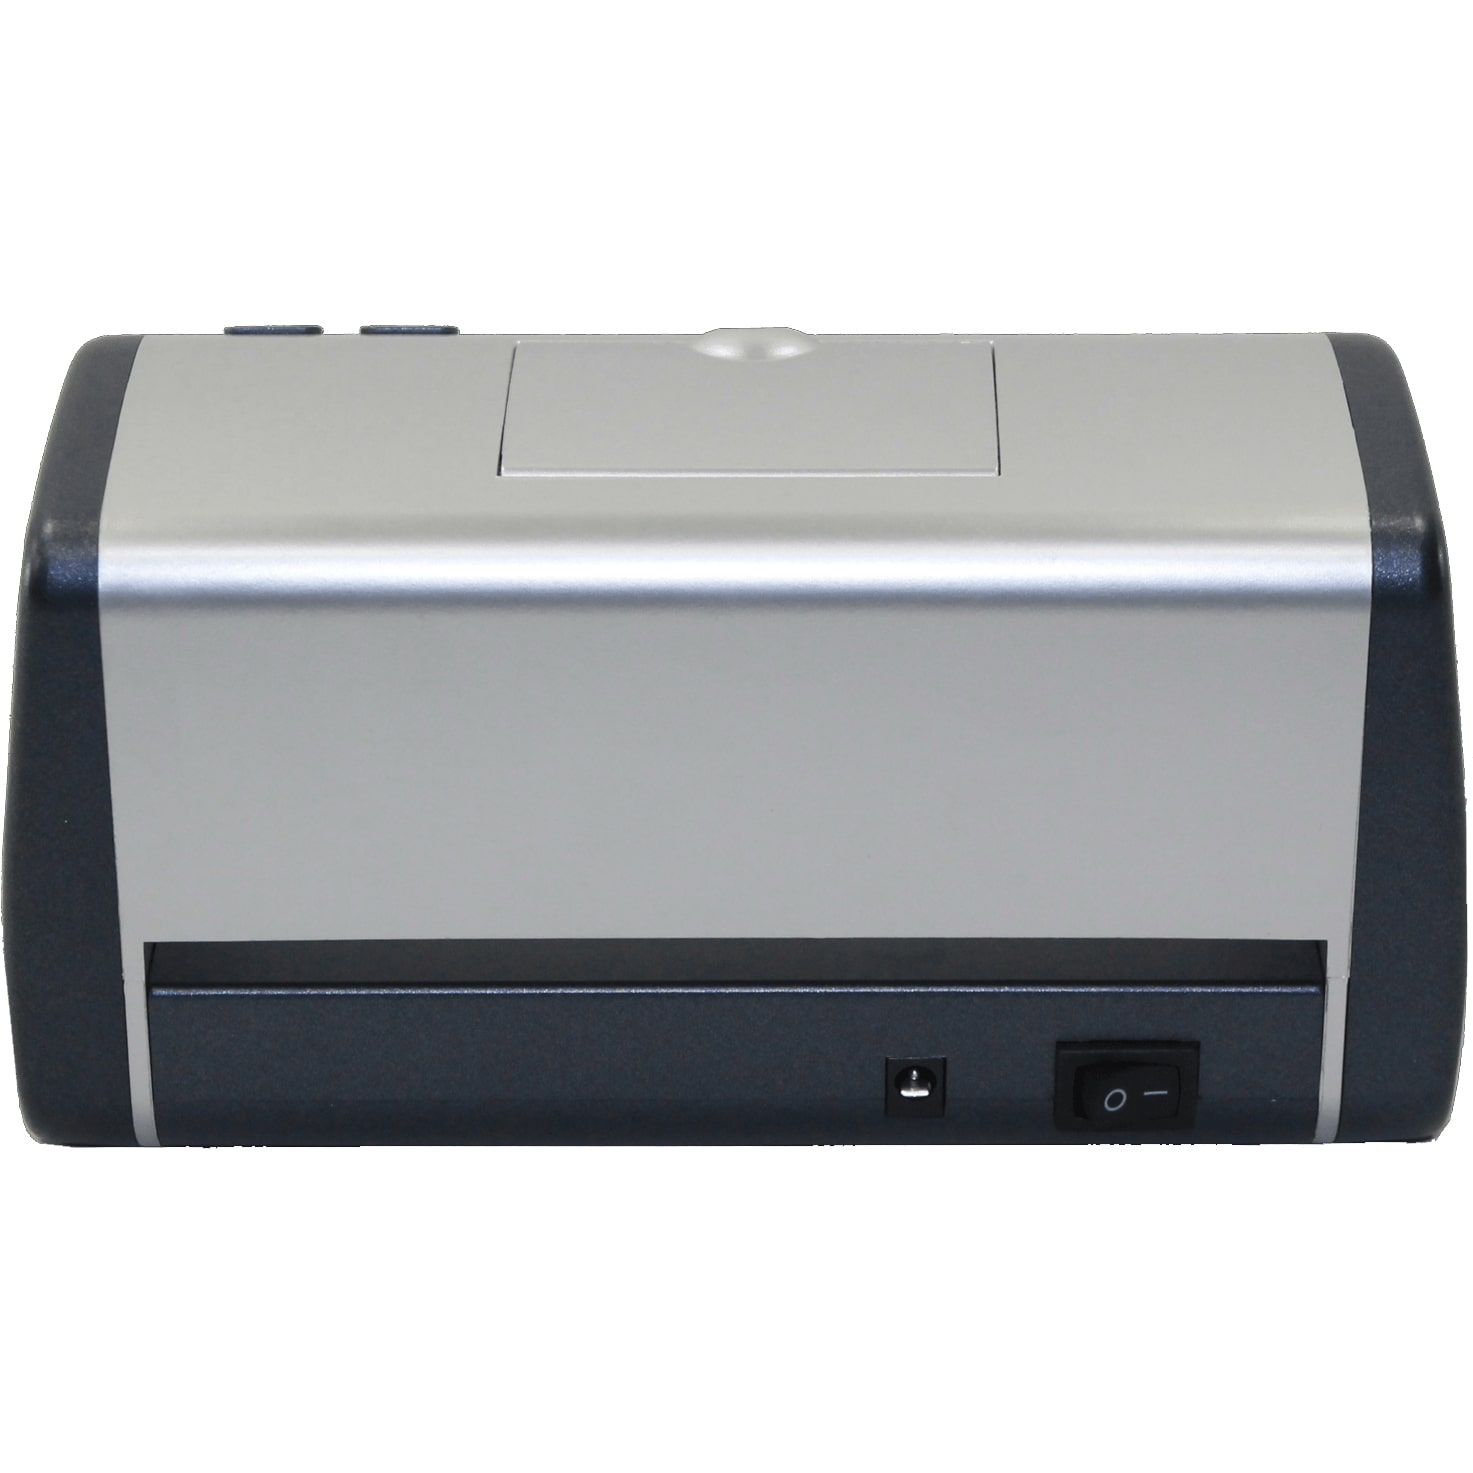 3-AccuBANKER LED430 counterfeit detector